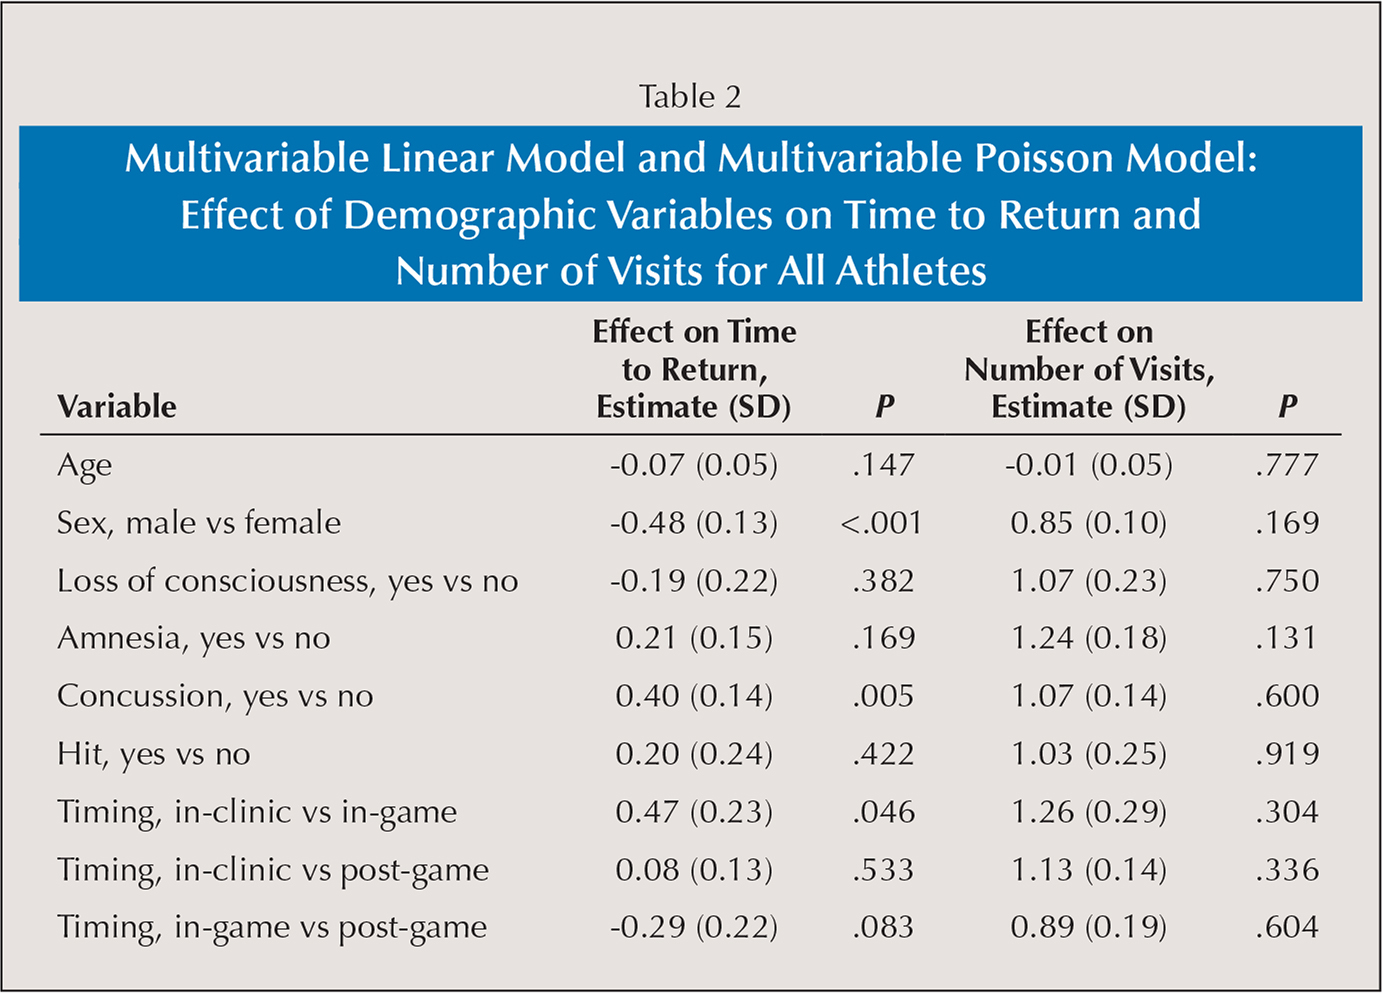 Multivariable Linear Model and Multivariable Poisson Model: Effect of Demographic Variables on Time to Return and Number of Visits for All Athletes